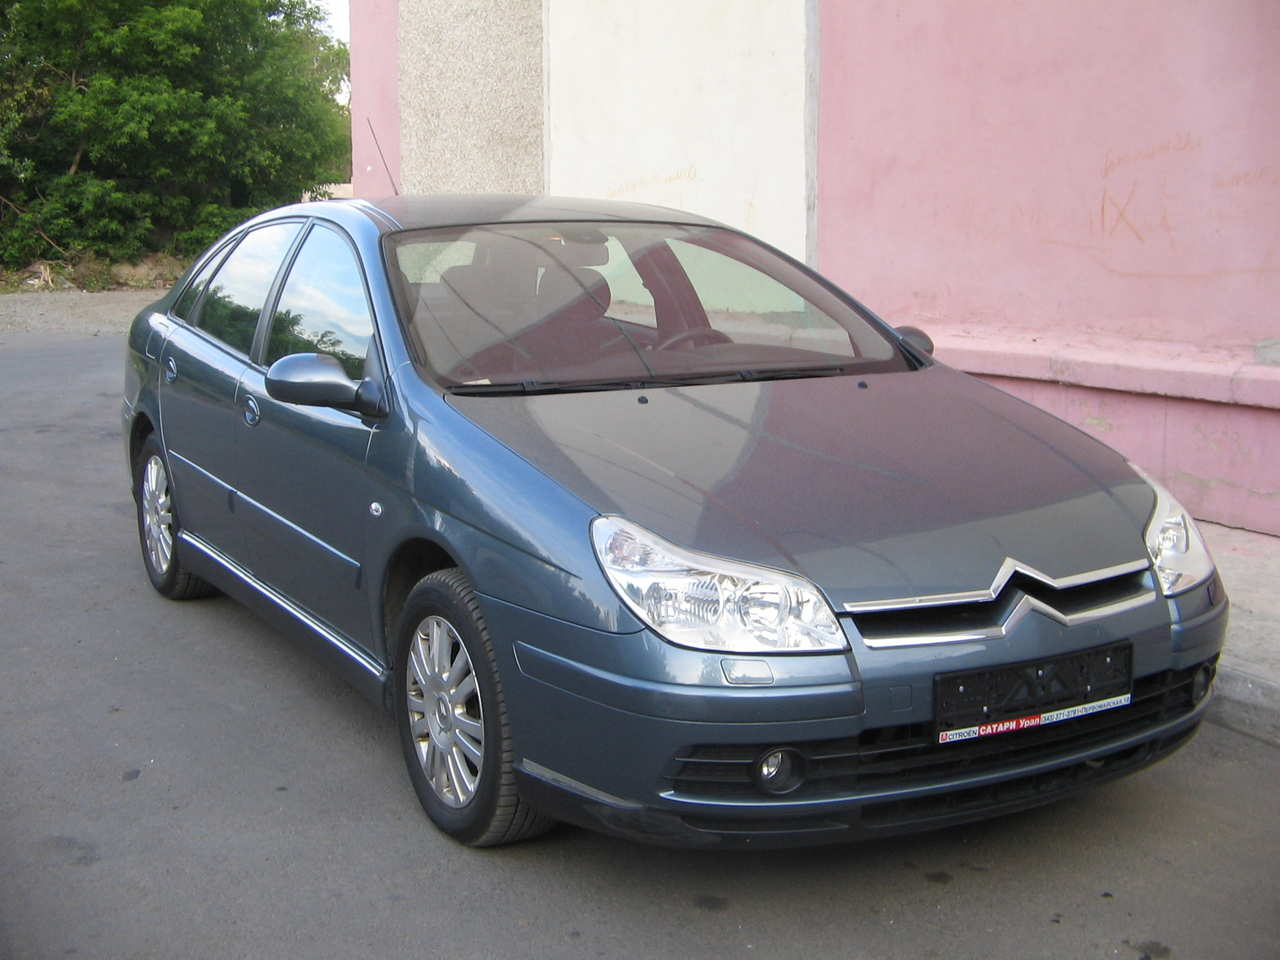 used 2006 citroen c5 photos 2000cc gasoline ff manual for sale. Black Bedroom Furniture Sets. Home Design Ideas